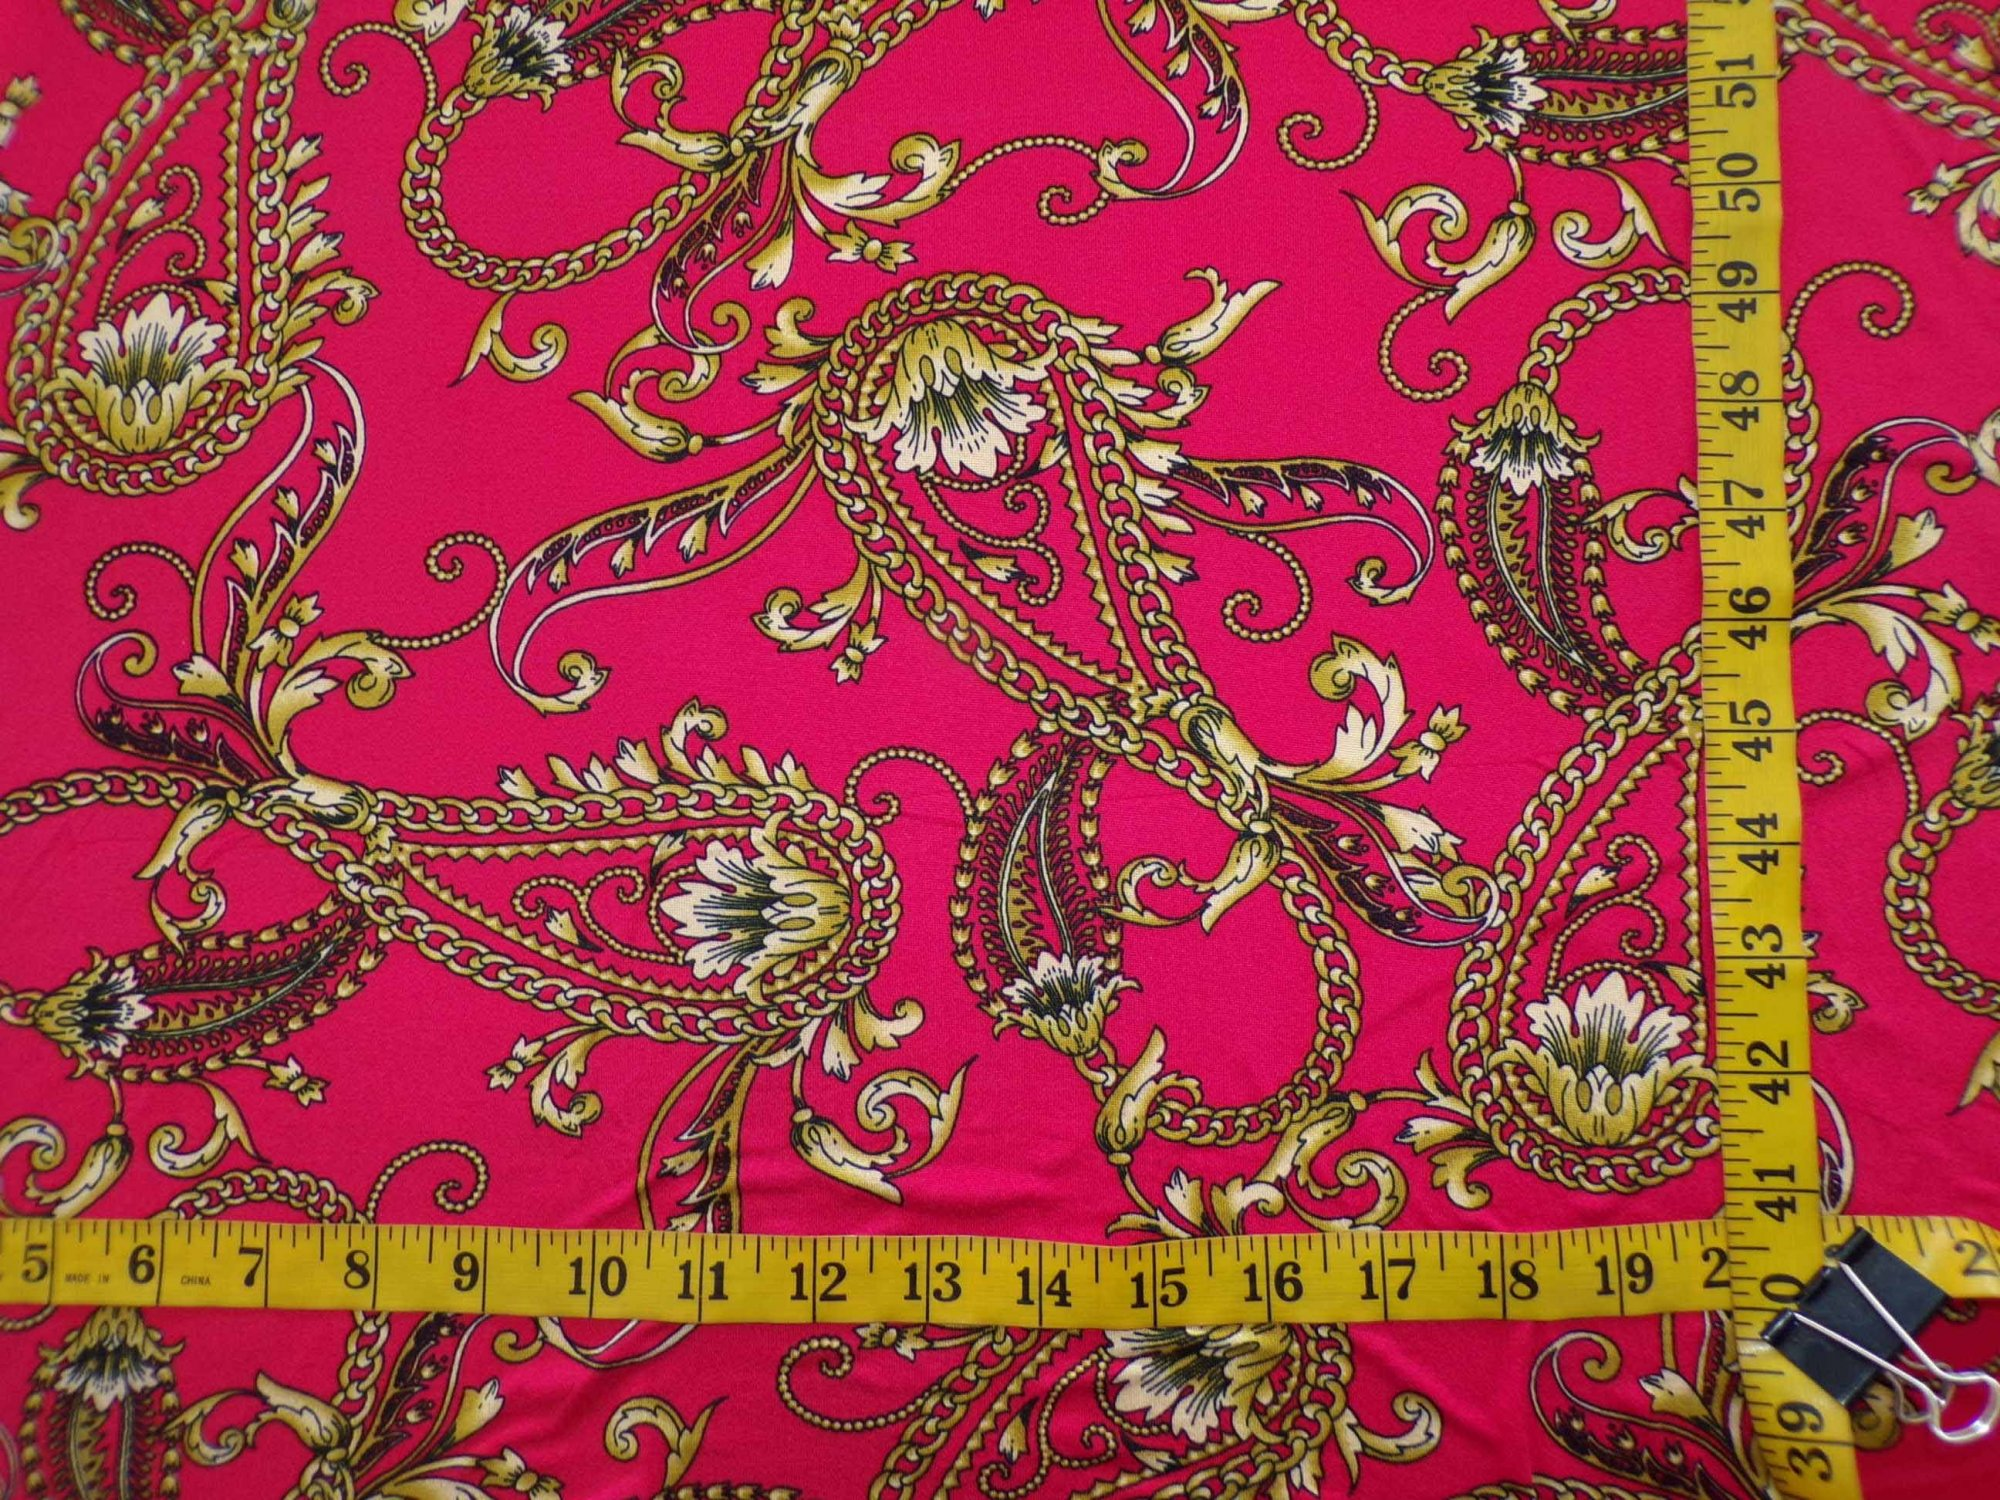 Milana (DBP) - Red with Gold Chain Paisley Print